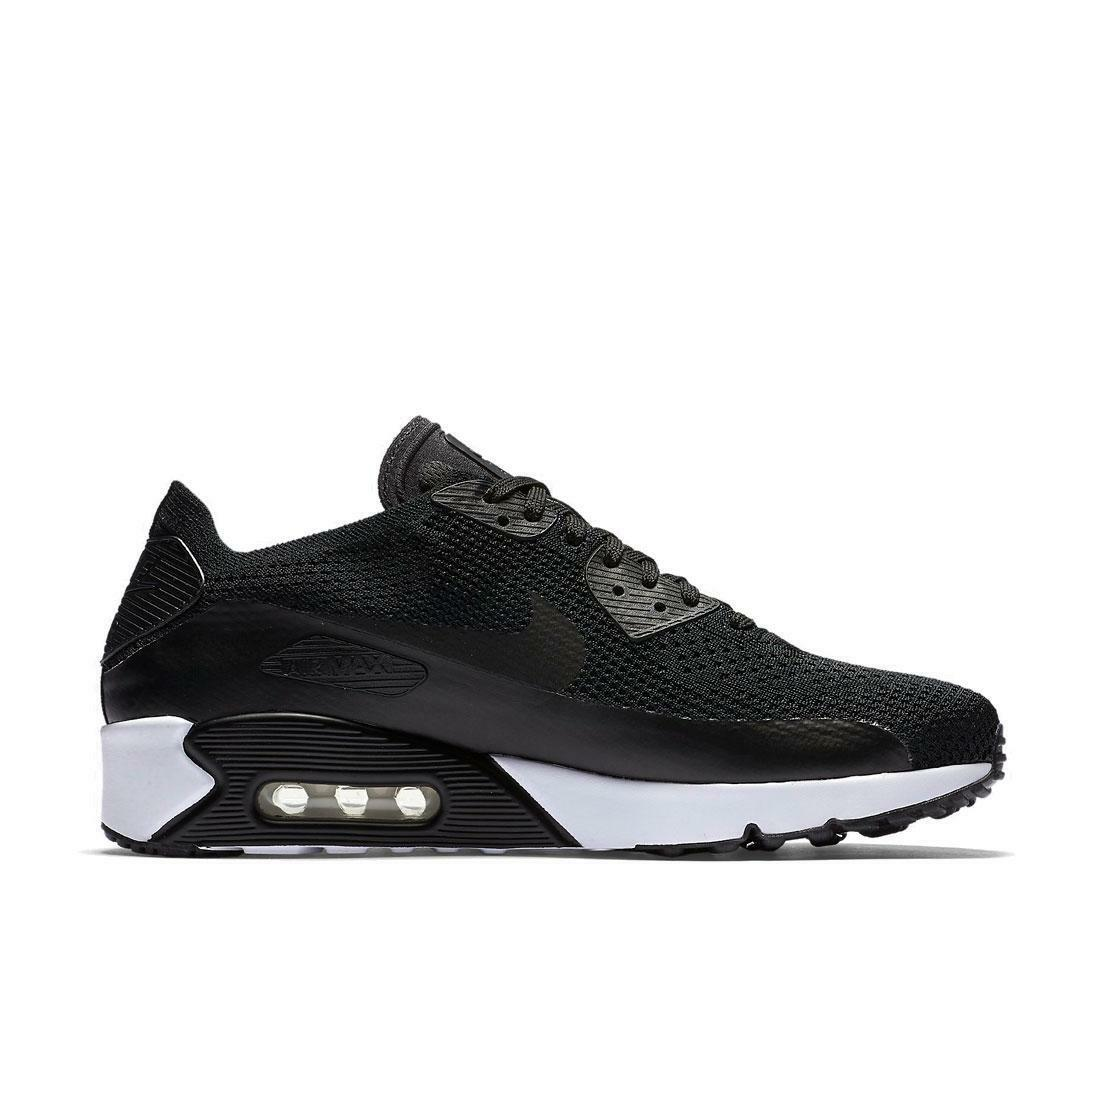 Homme Nike Air Max 90 Ultra 2.0 Flyknit Black 875943 Trainers 875943 Black 004 082a86